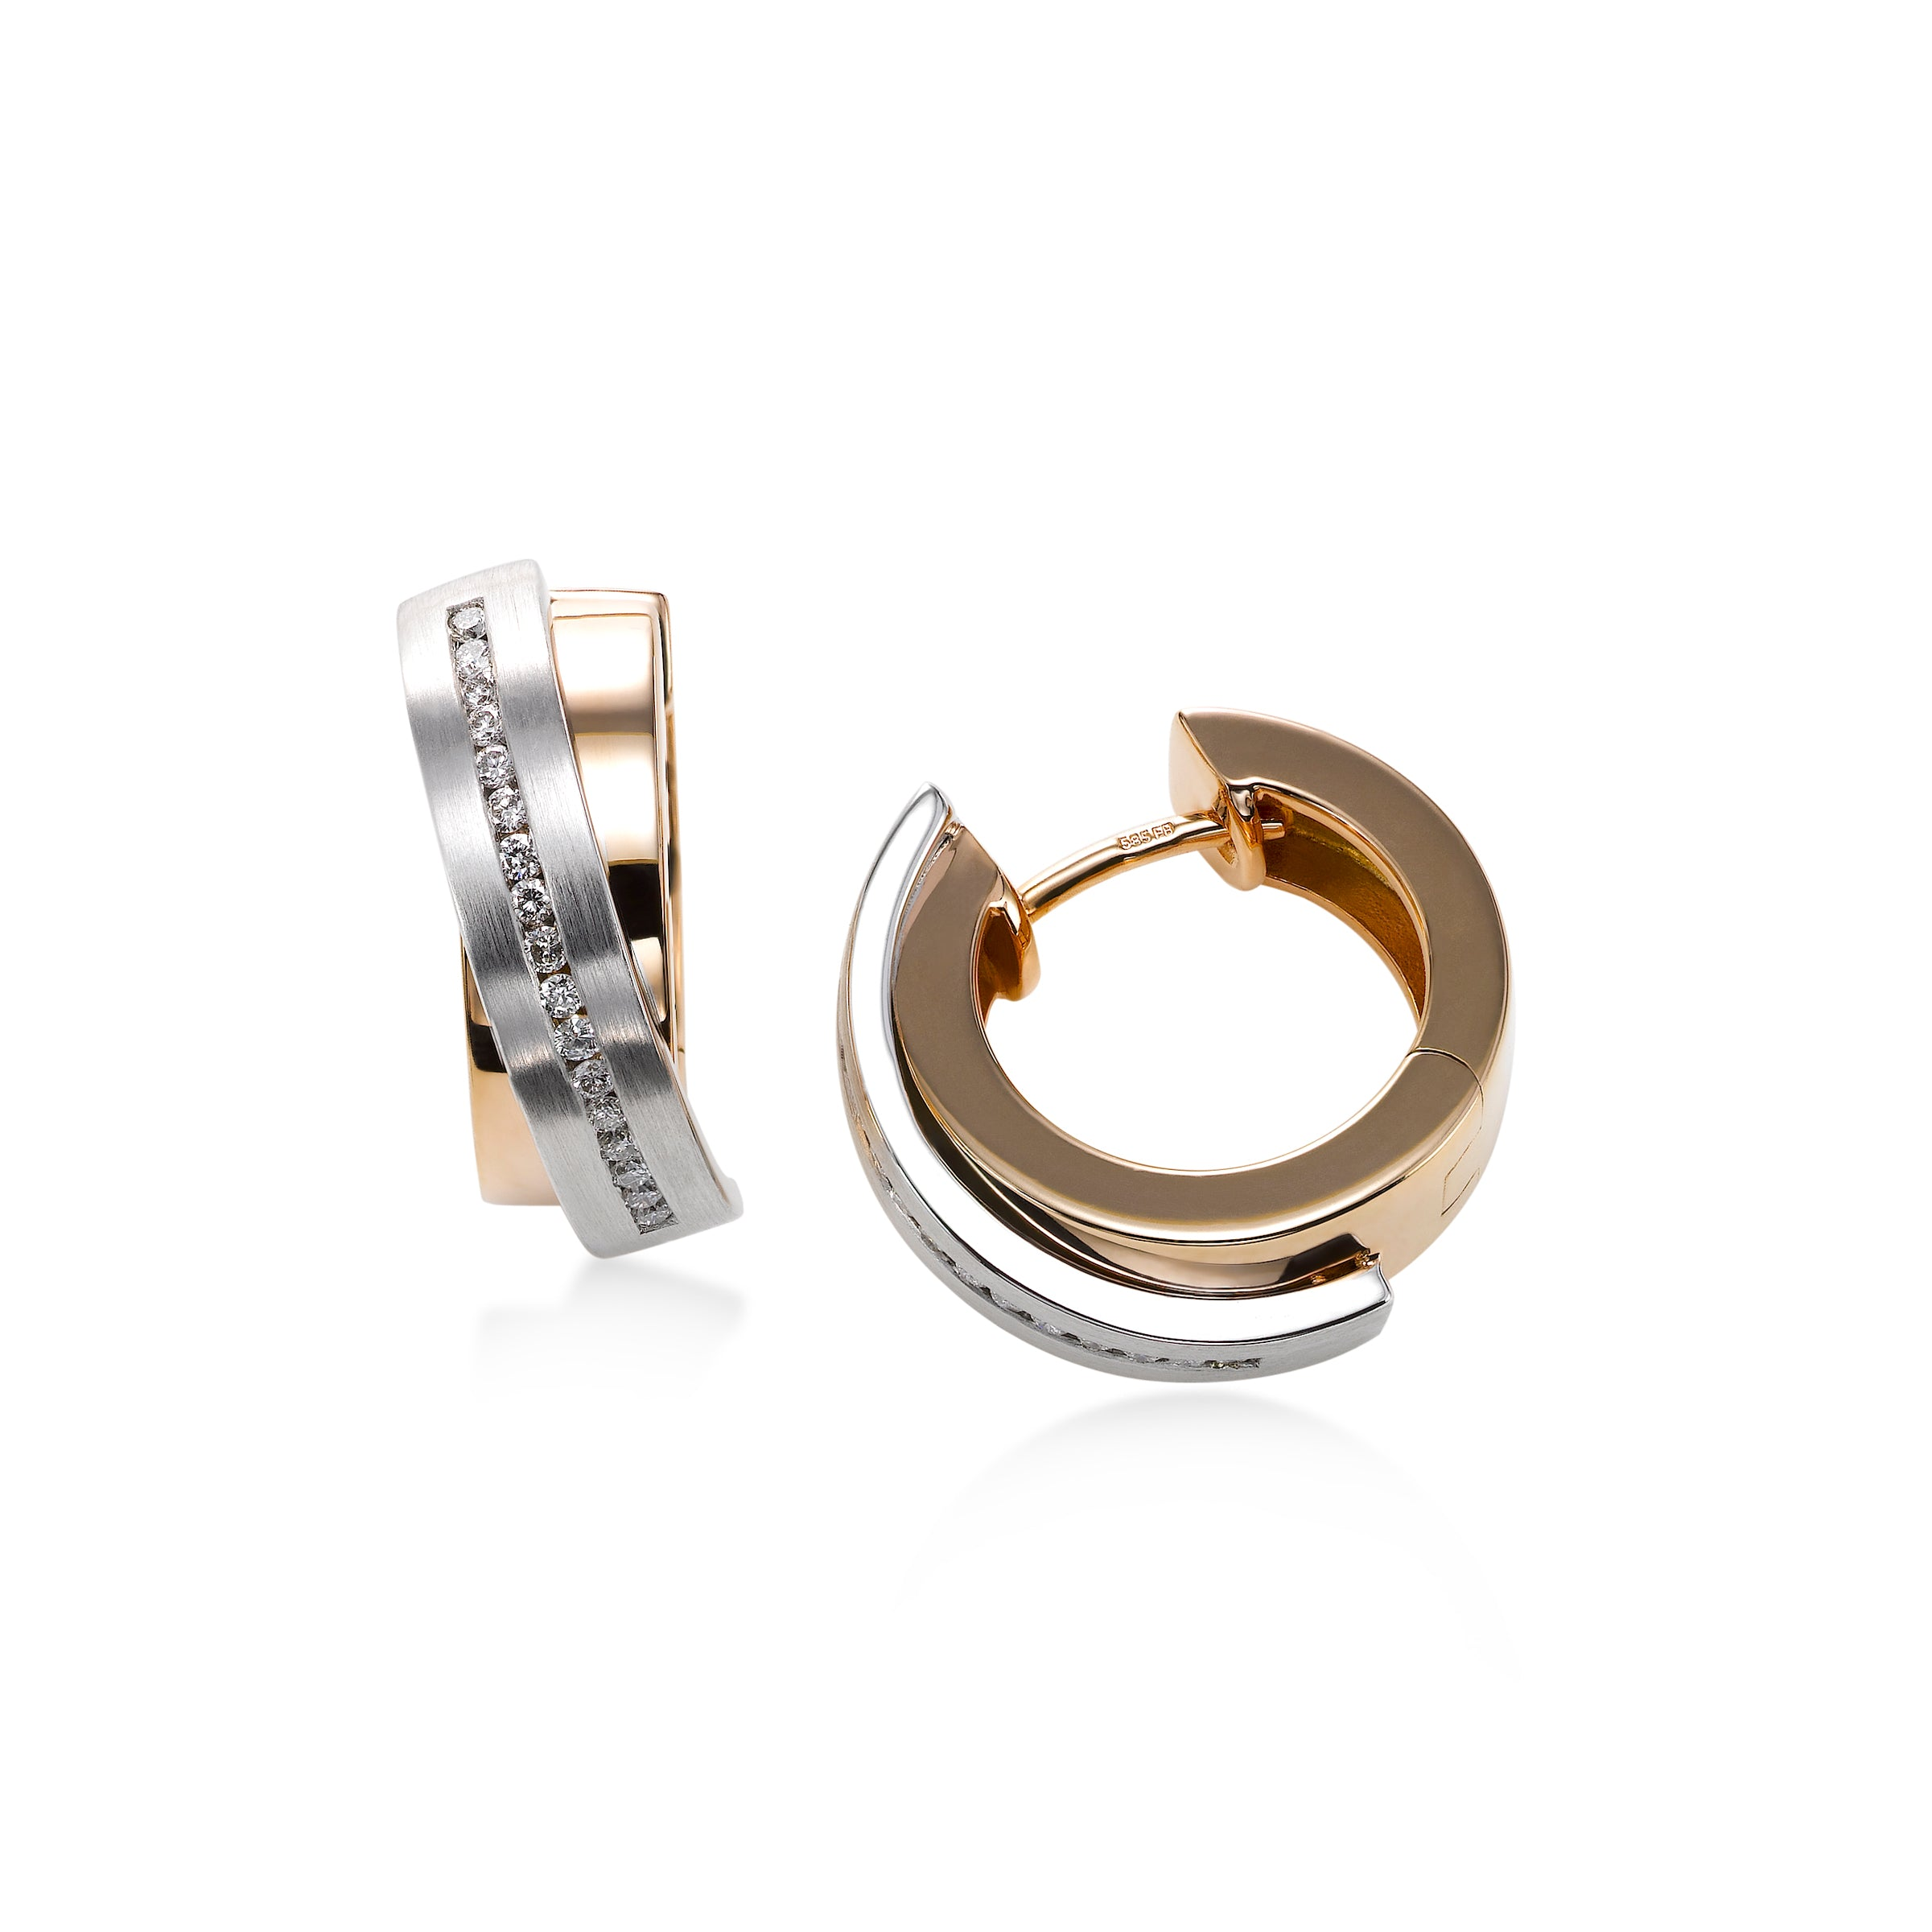 Two Tone Huggie Hoop Earrings with Diamonds, 14K Gold